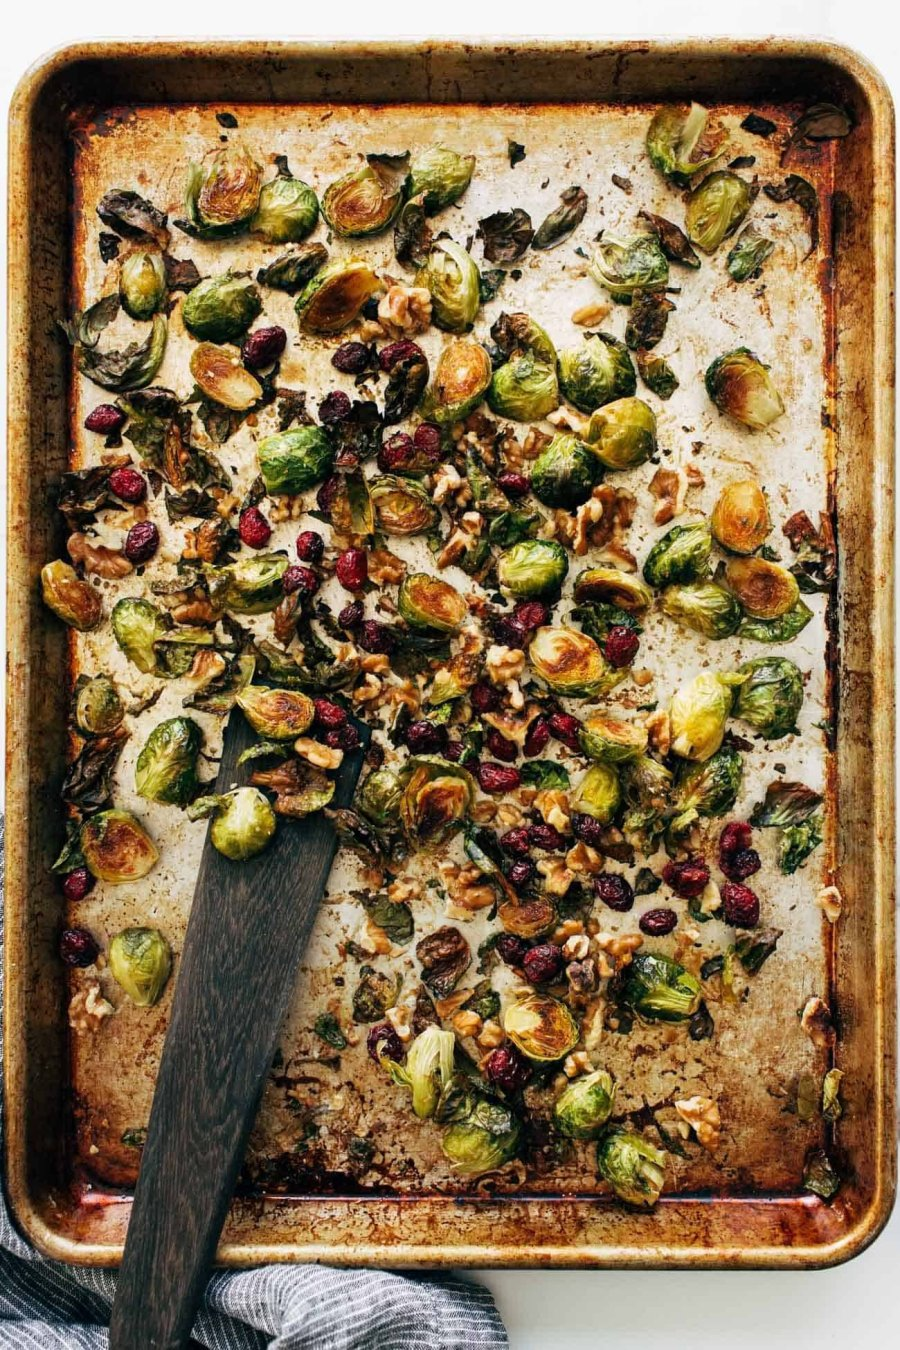 Roasted Brussels sprouts on a pan with a spatula